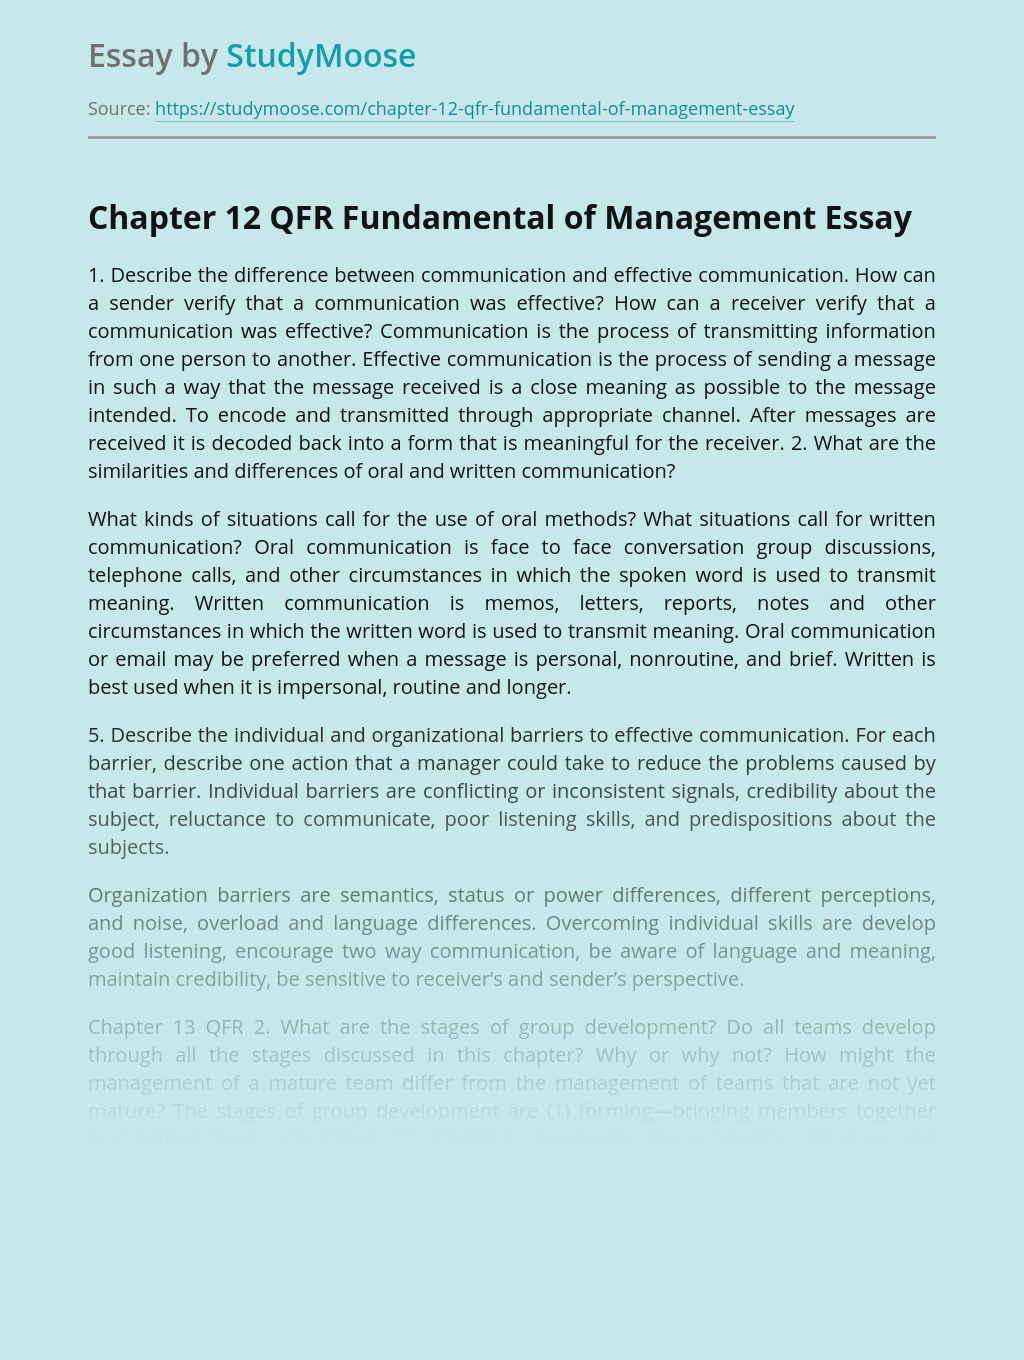 Chapter 12 QFR Fundamental of Management